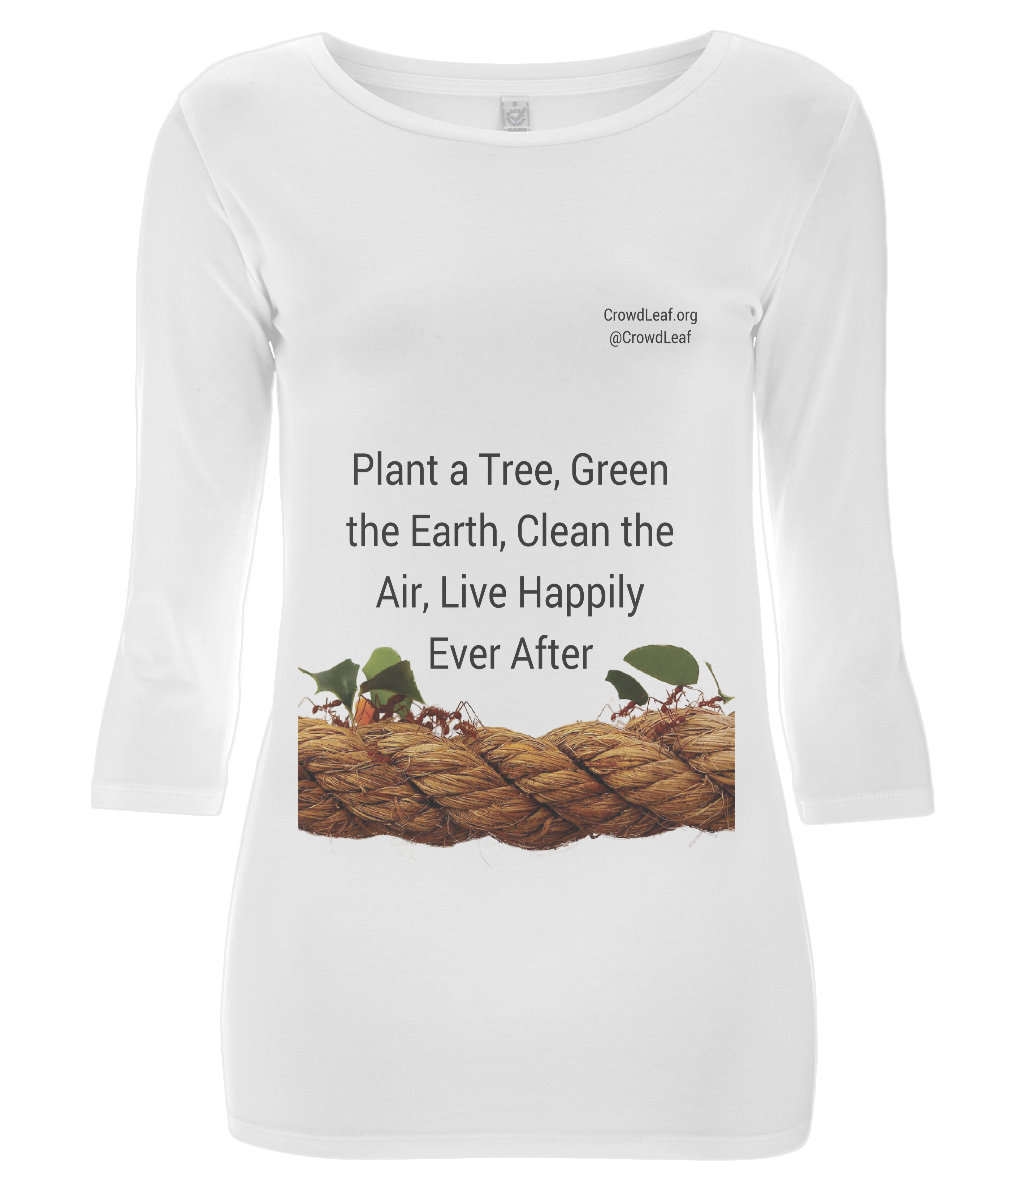 CrowdLeaf Women's 3/4 Sleeve Stretch T-Shirt Plant a Tree, Green the Earth, Clean the Air, Live Happily Ever After - Black Type